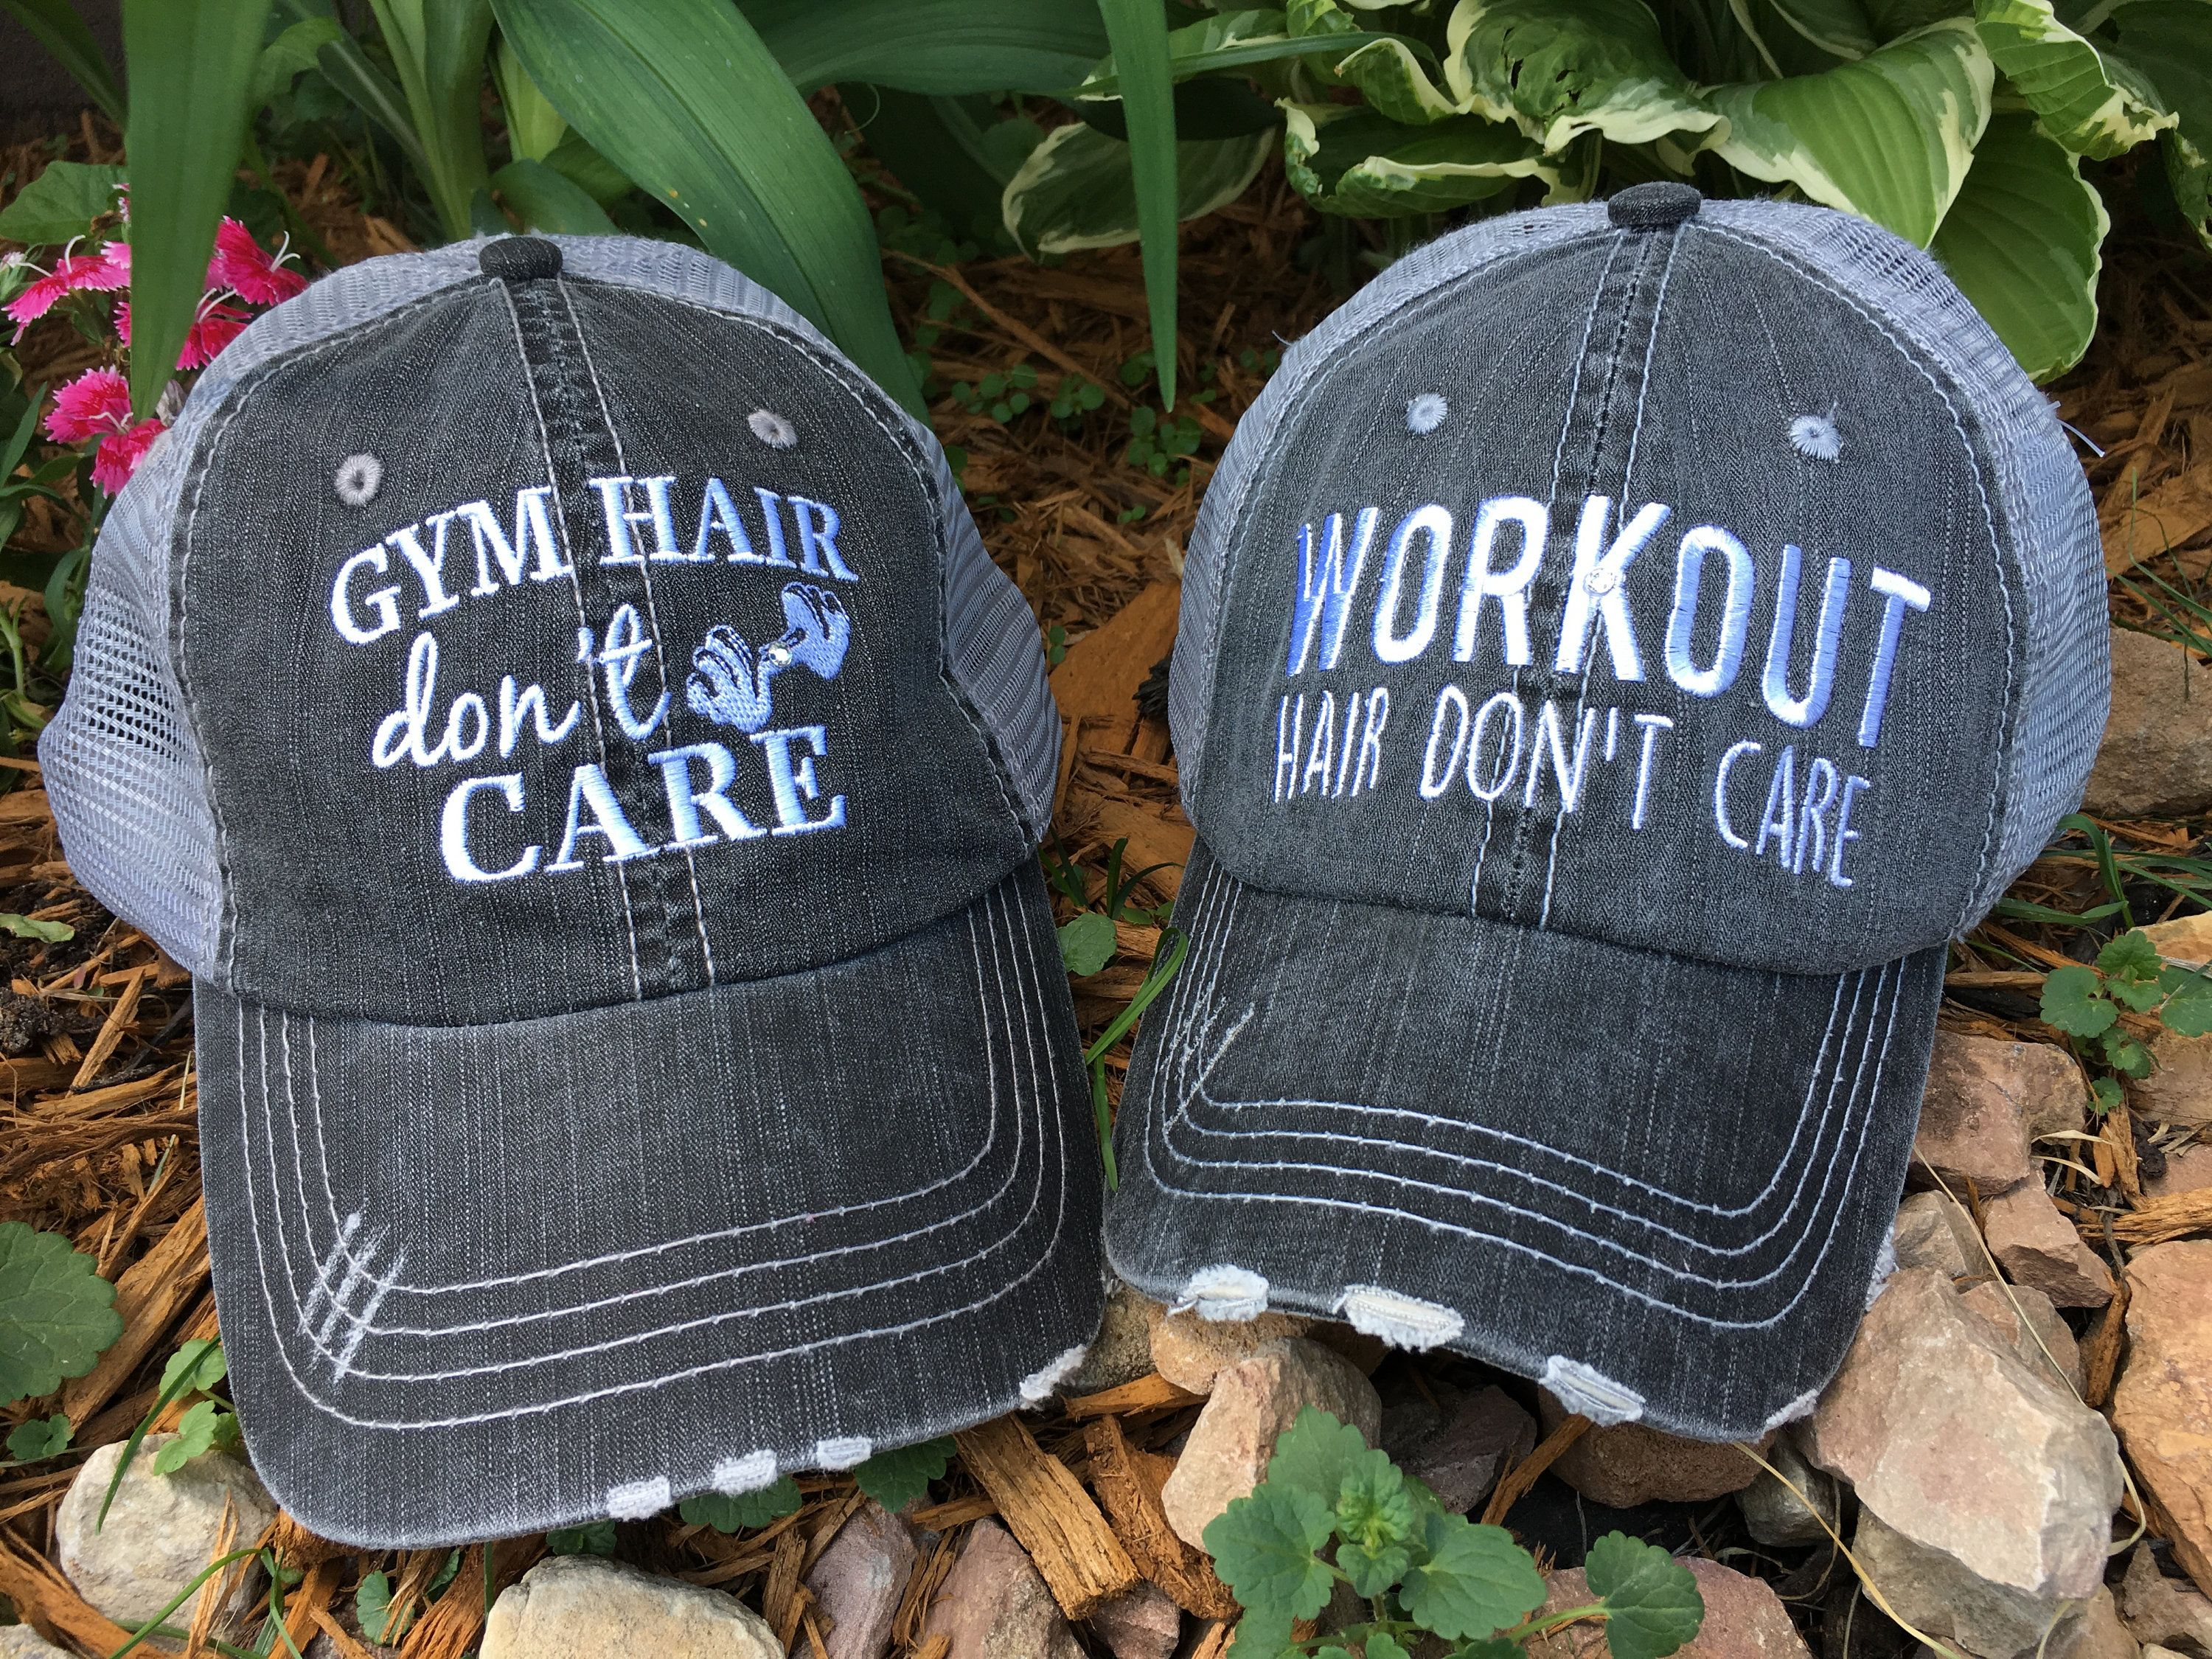 Gym Workout Yoga hats Embroidered gray distressed unisex